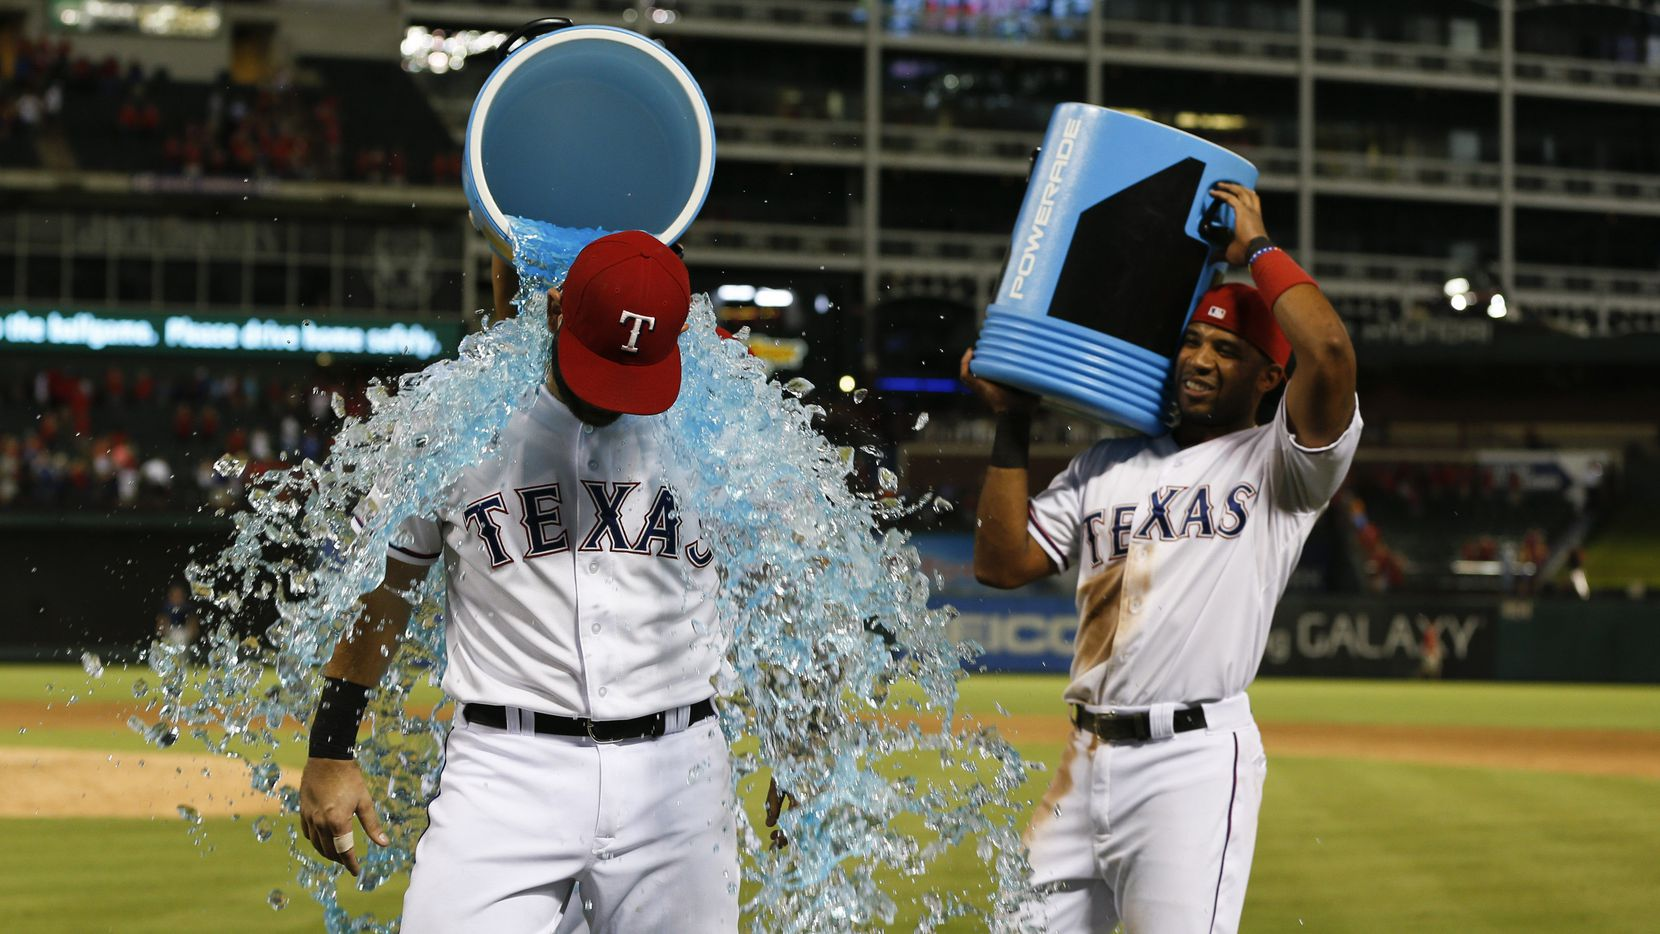 Sep 17, 2015; Arlington, TX, USA; Texas Rangers first baseman Mitch Moreland (18) is doused by teammates shortstop Elvis Andrus (1) and Rougned Odor following their teams win over the Houston Astros during a baseball game at Globe Life Park in Arlington. The Rangers won 8-2.